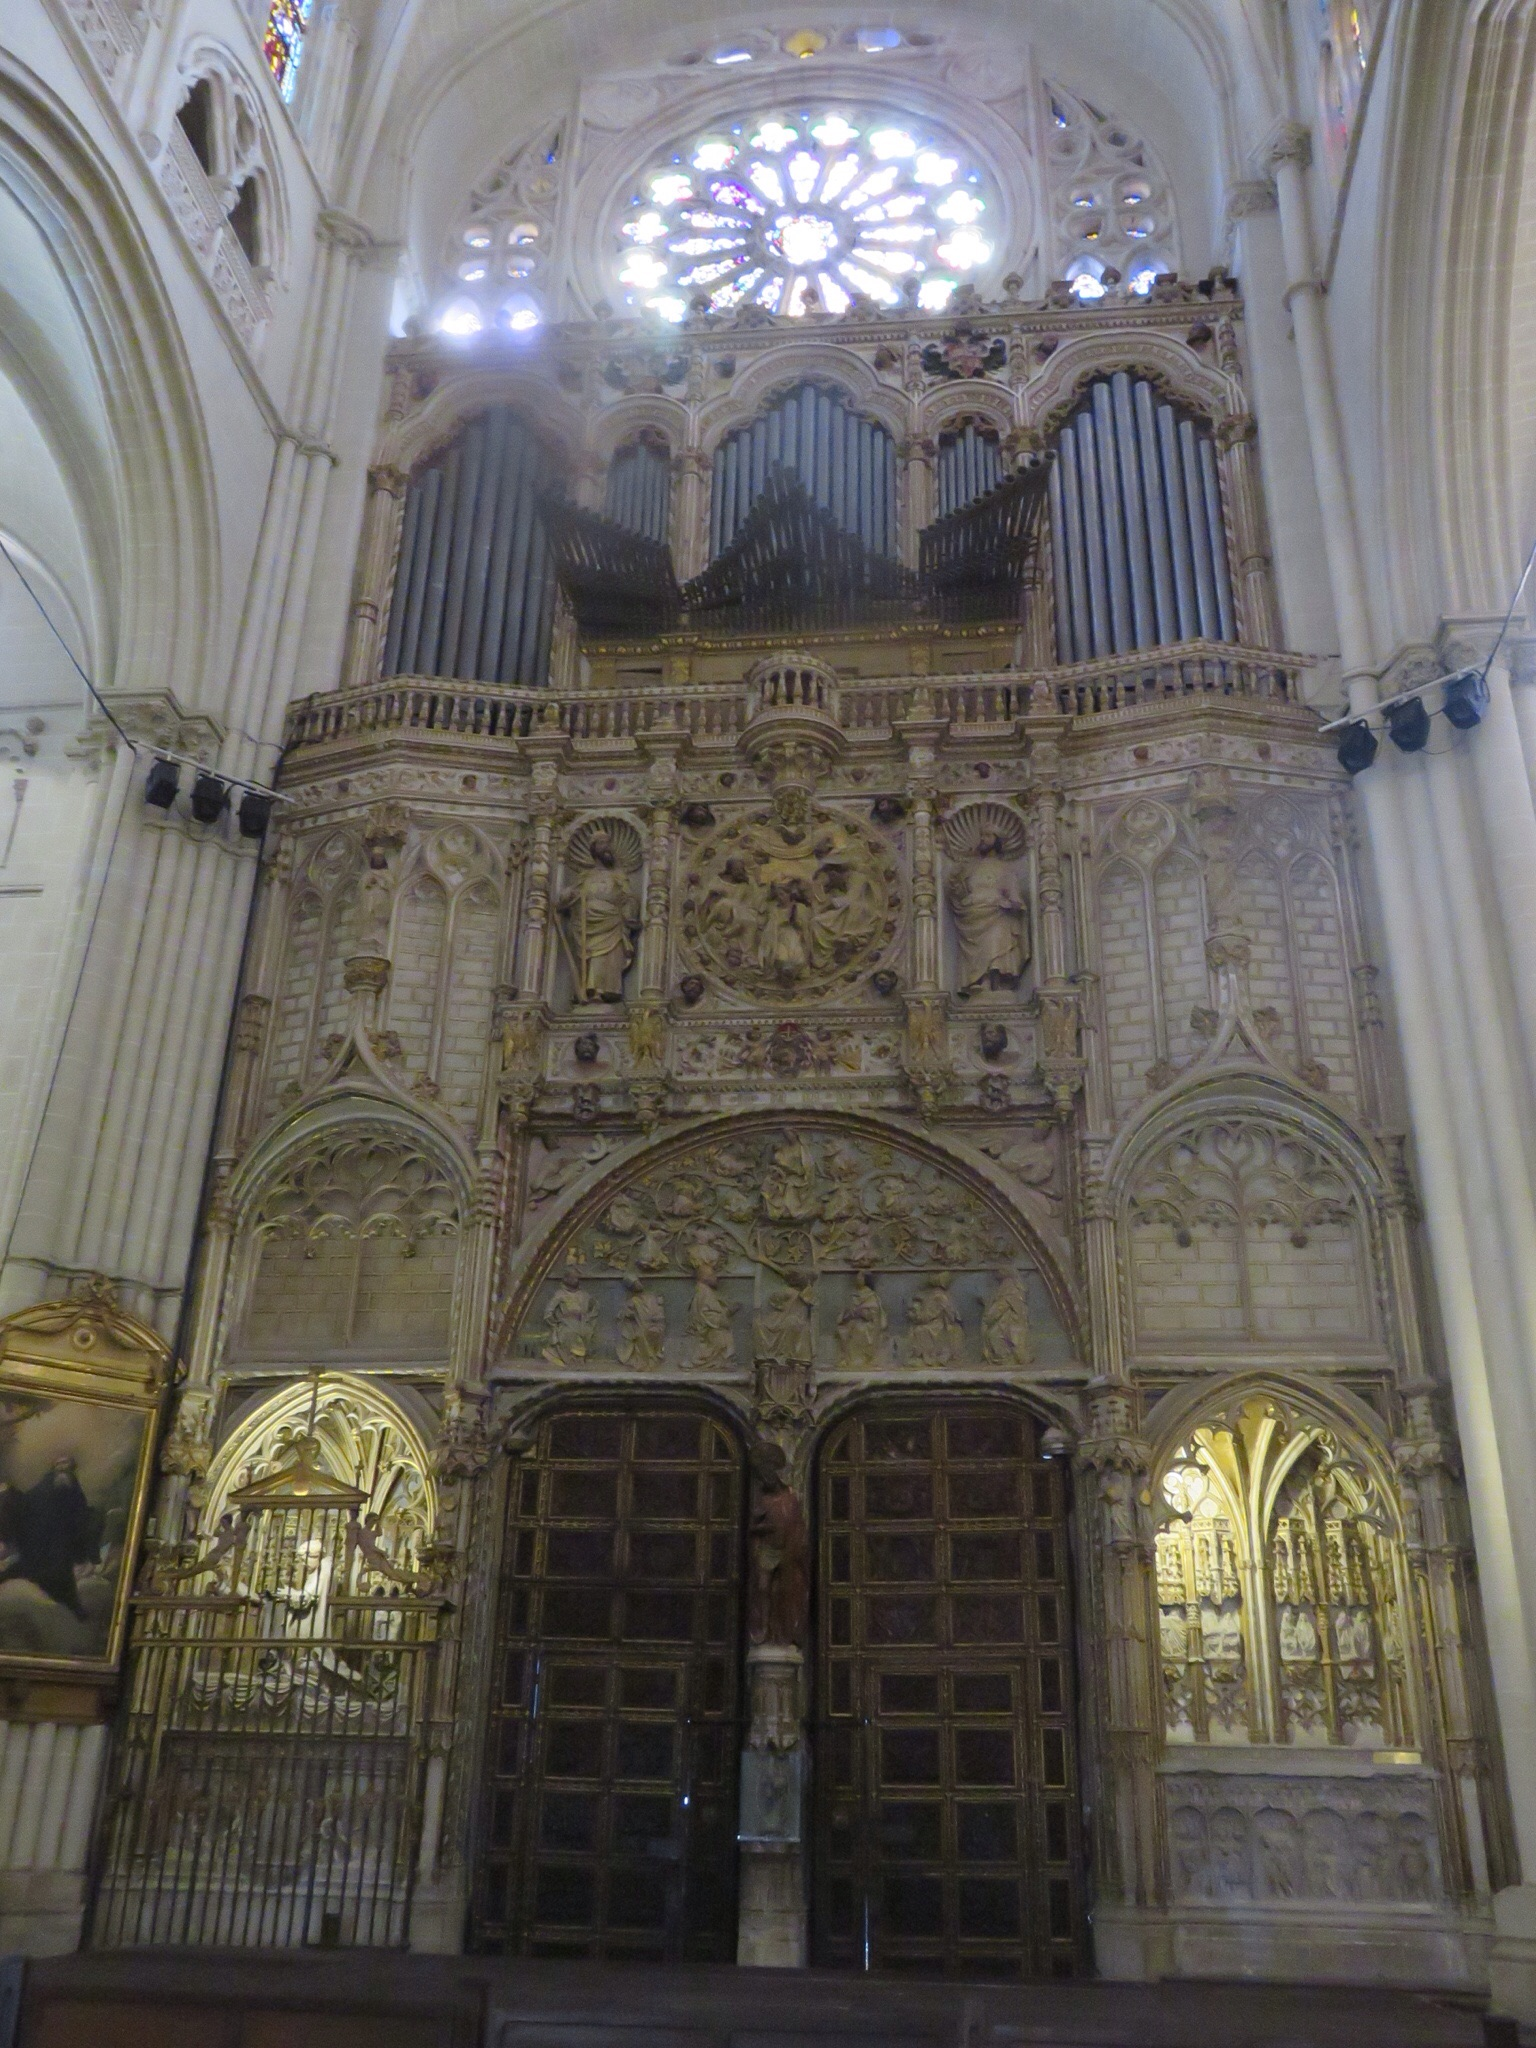 One of many pipe organs